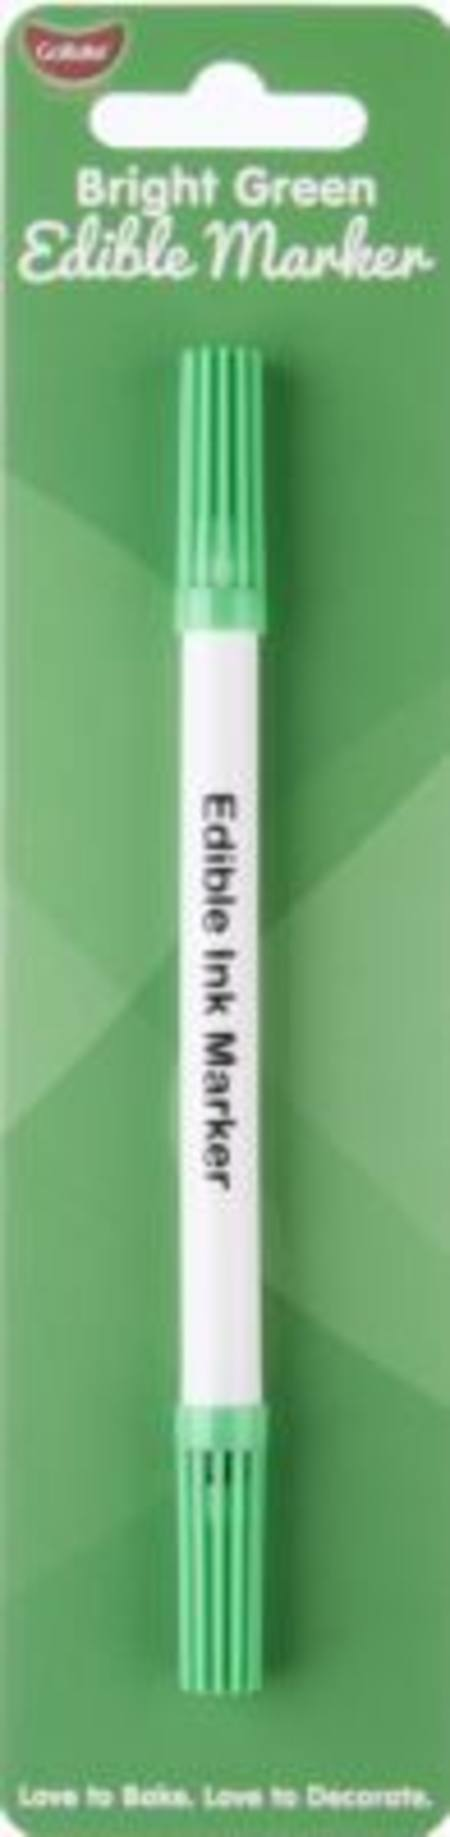 Buy Edible Marker Pen Bright Green in NZ.